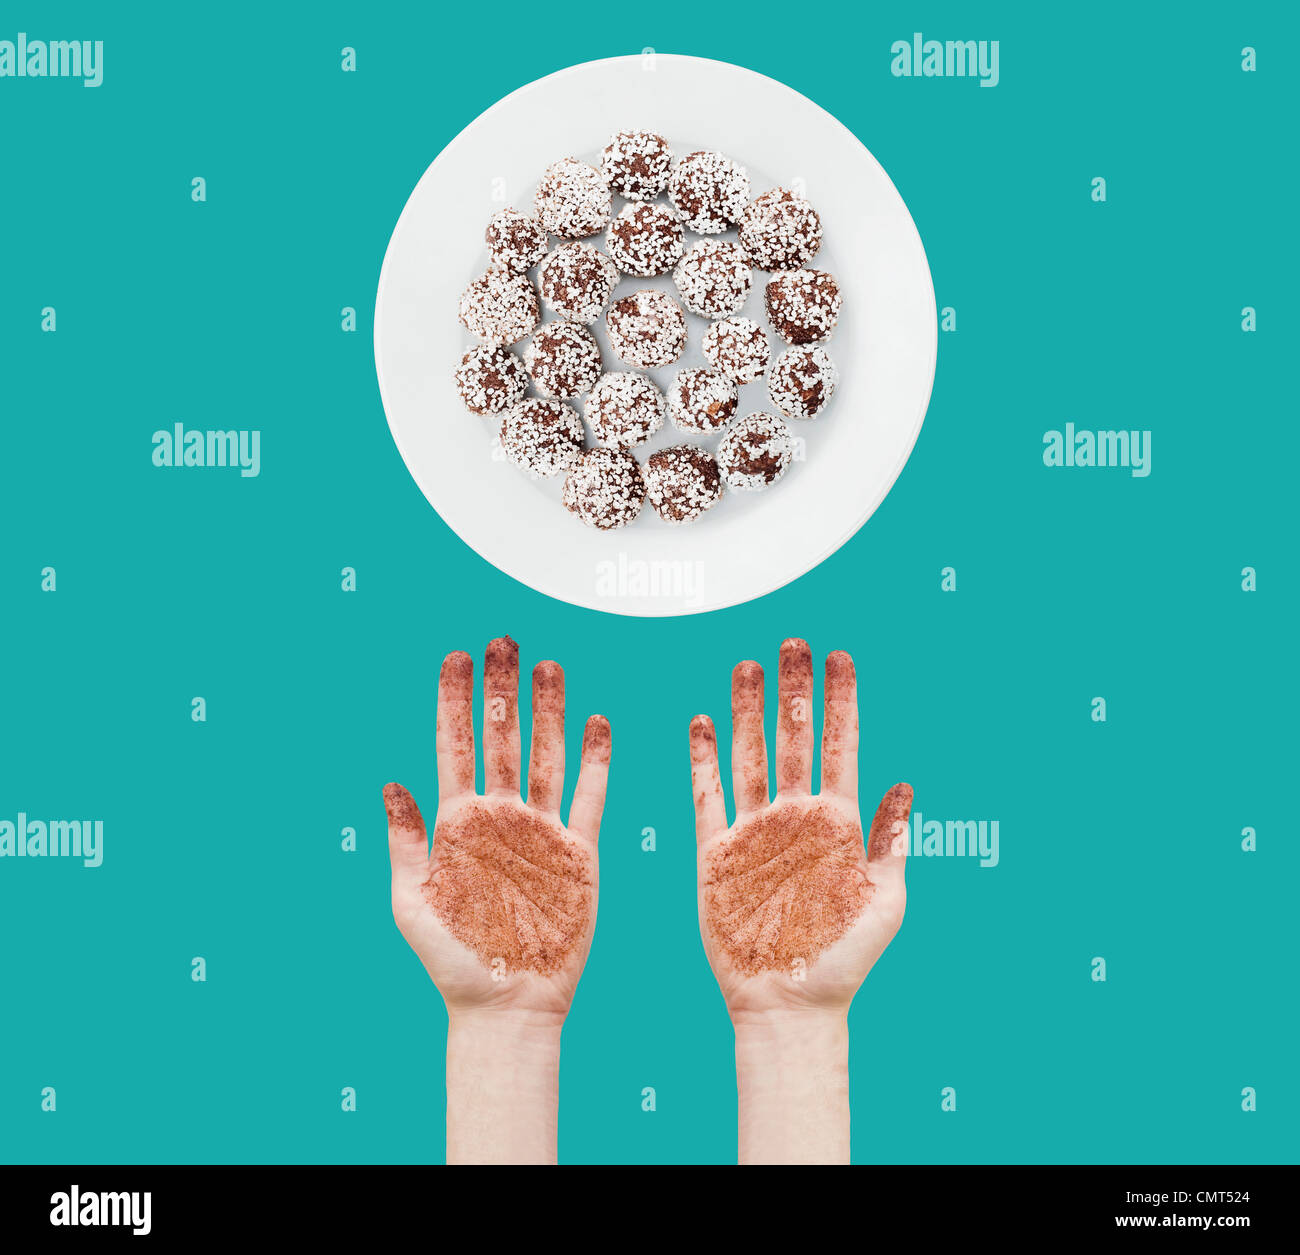 Messy hands and chocolate balls - Stock Image